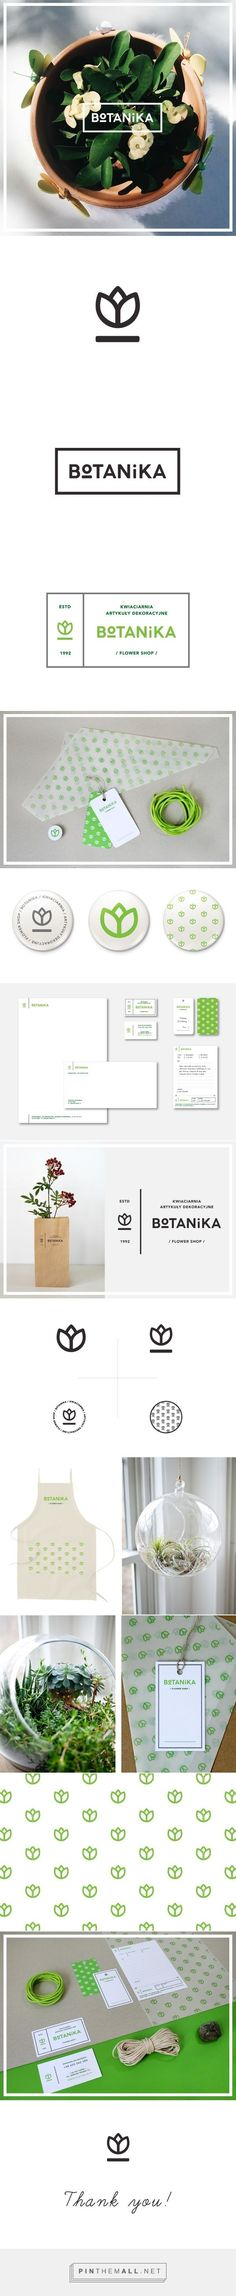 Logos Botanika | flower shop on Behance                                                                                                                                                                                 More